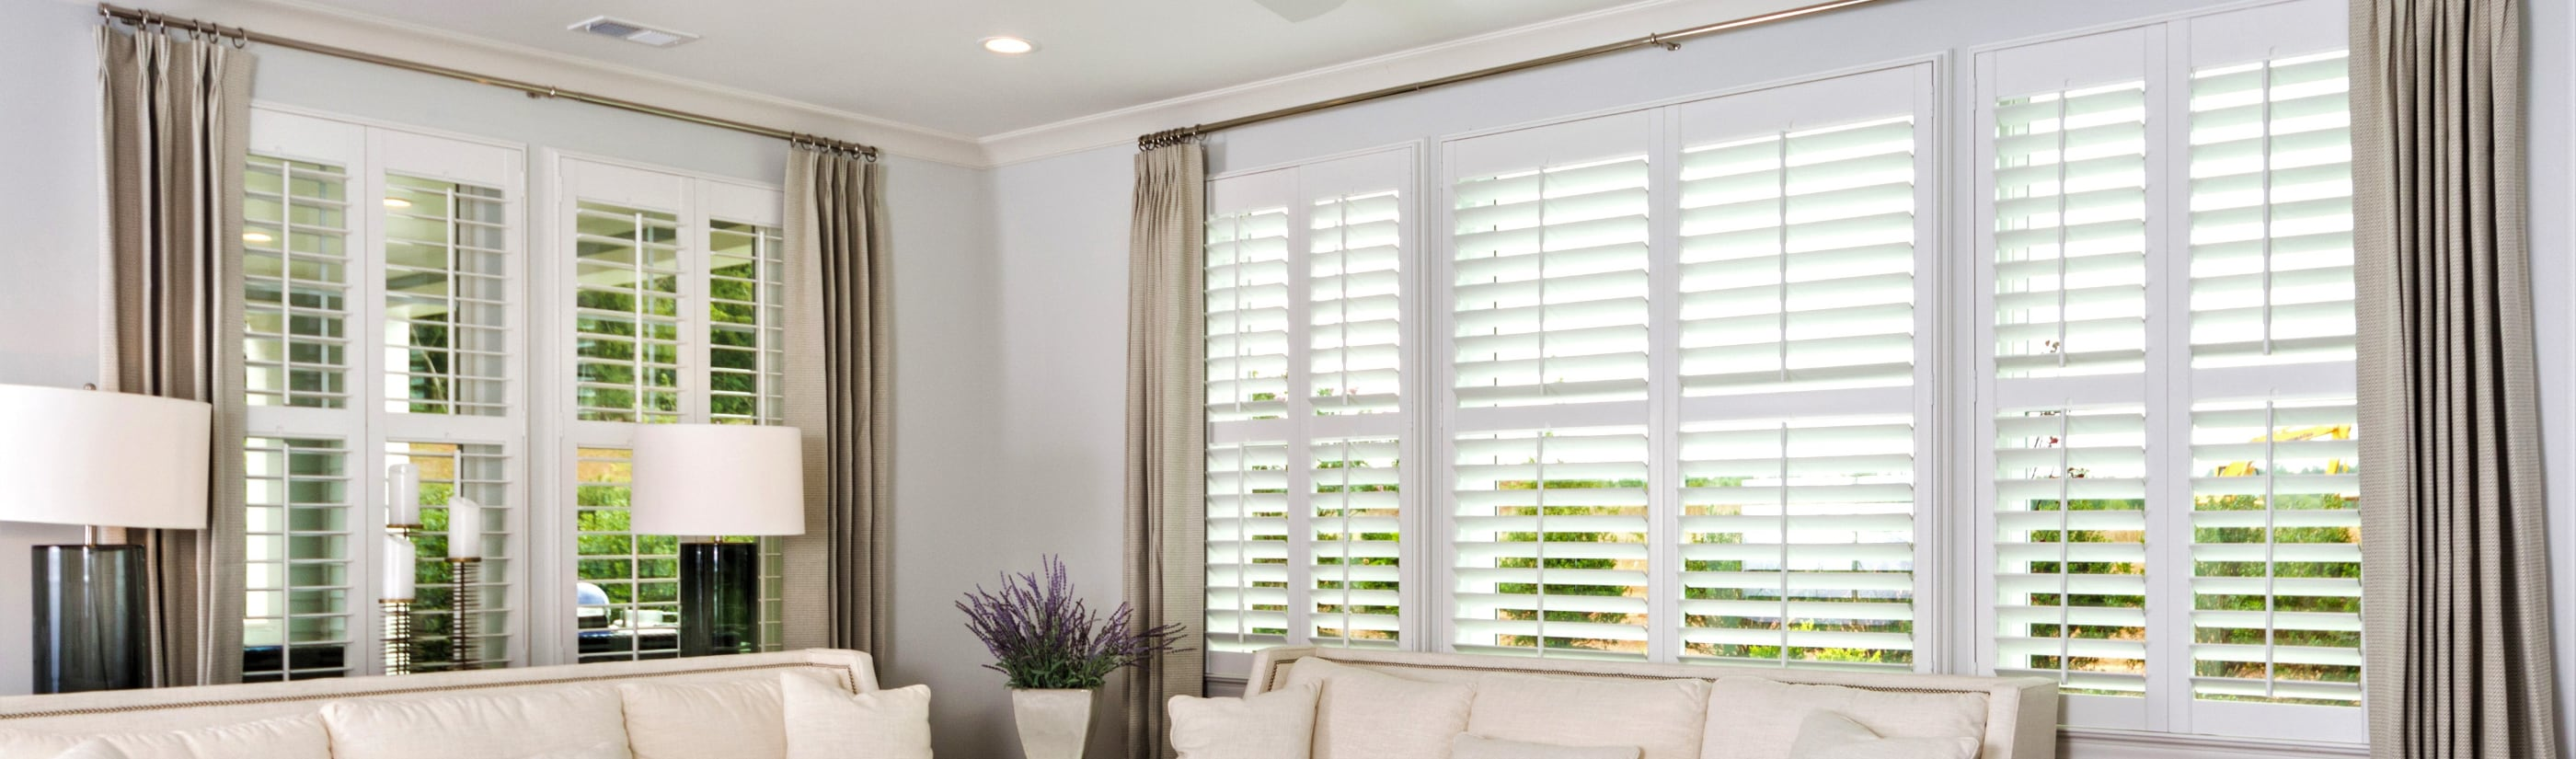 Polywood Shutters Paints In Houston